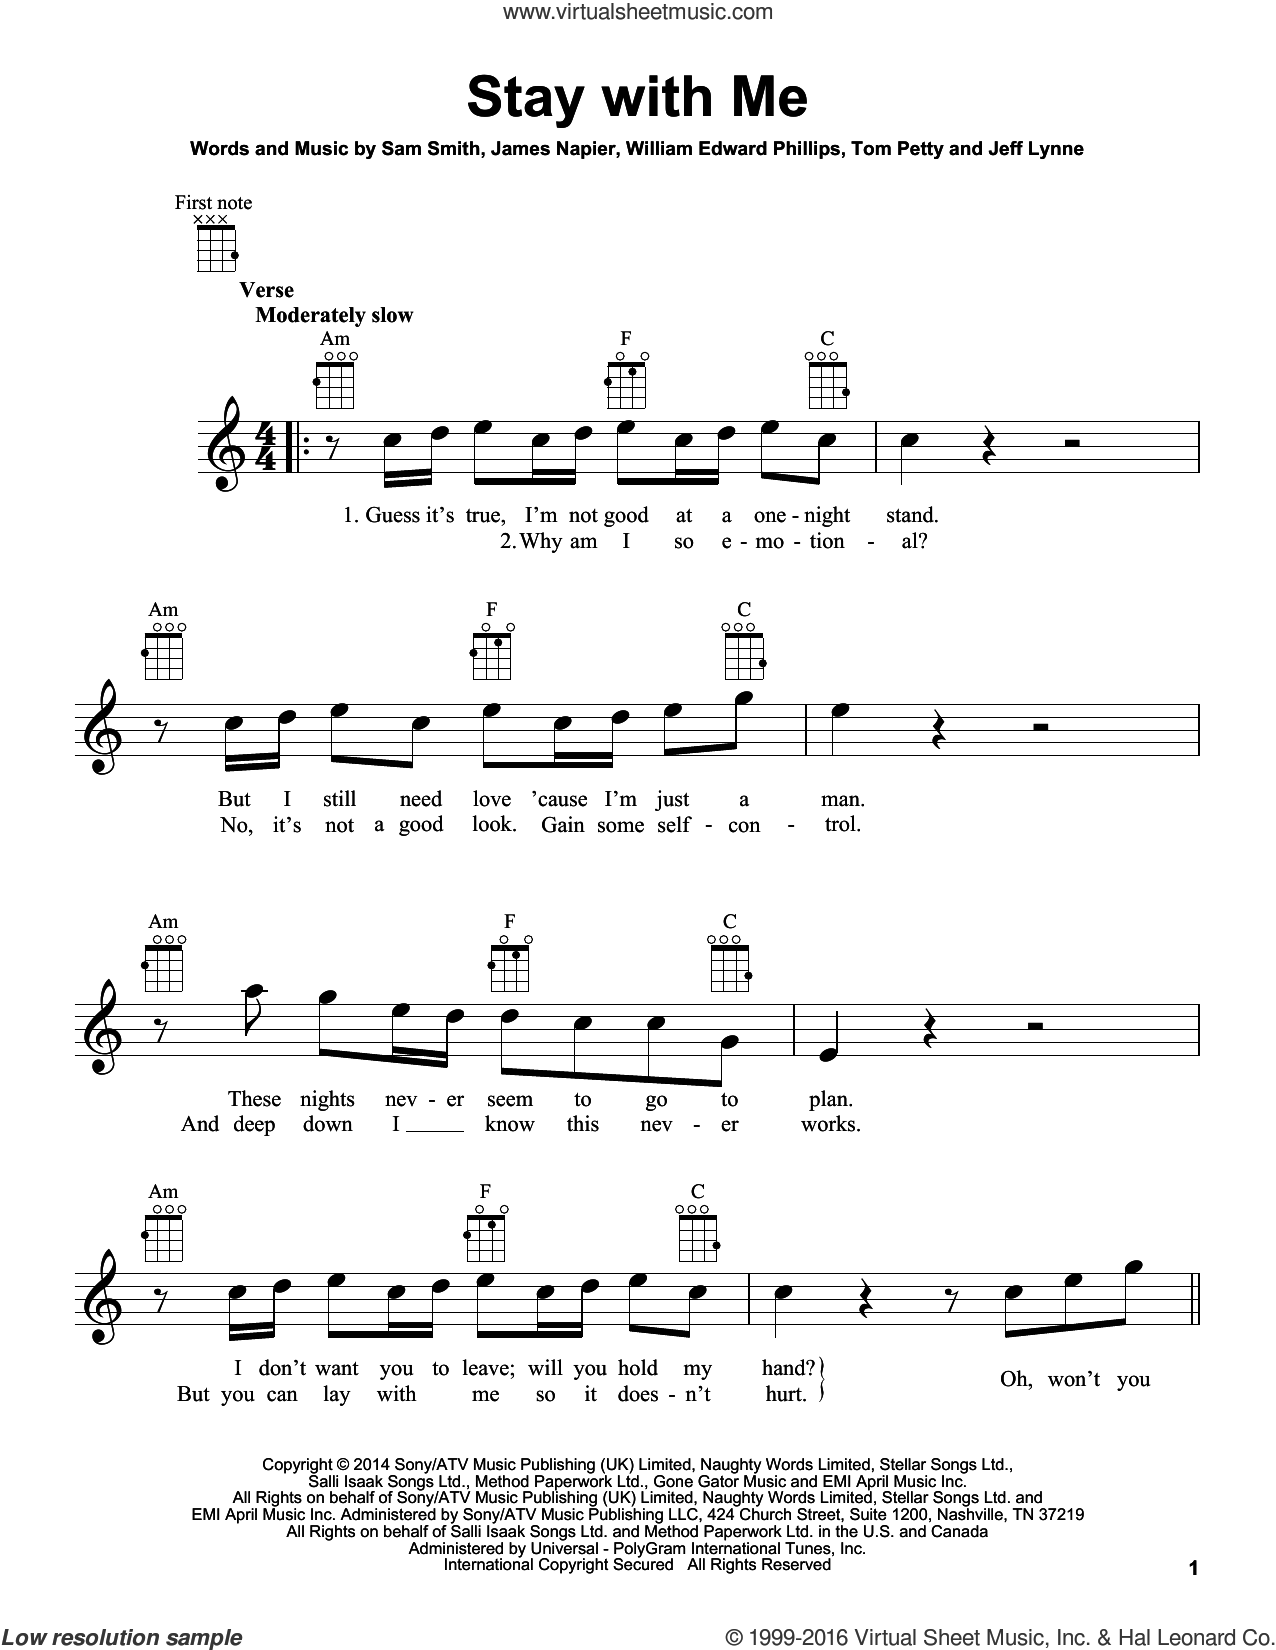 Stay With Me sheet music for ukulele by Sam Smith, James Napier and William Edward Phillips, intermediate